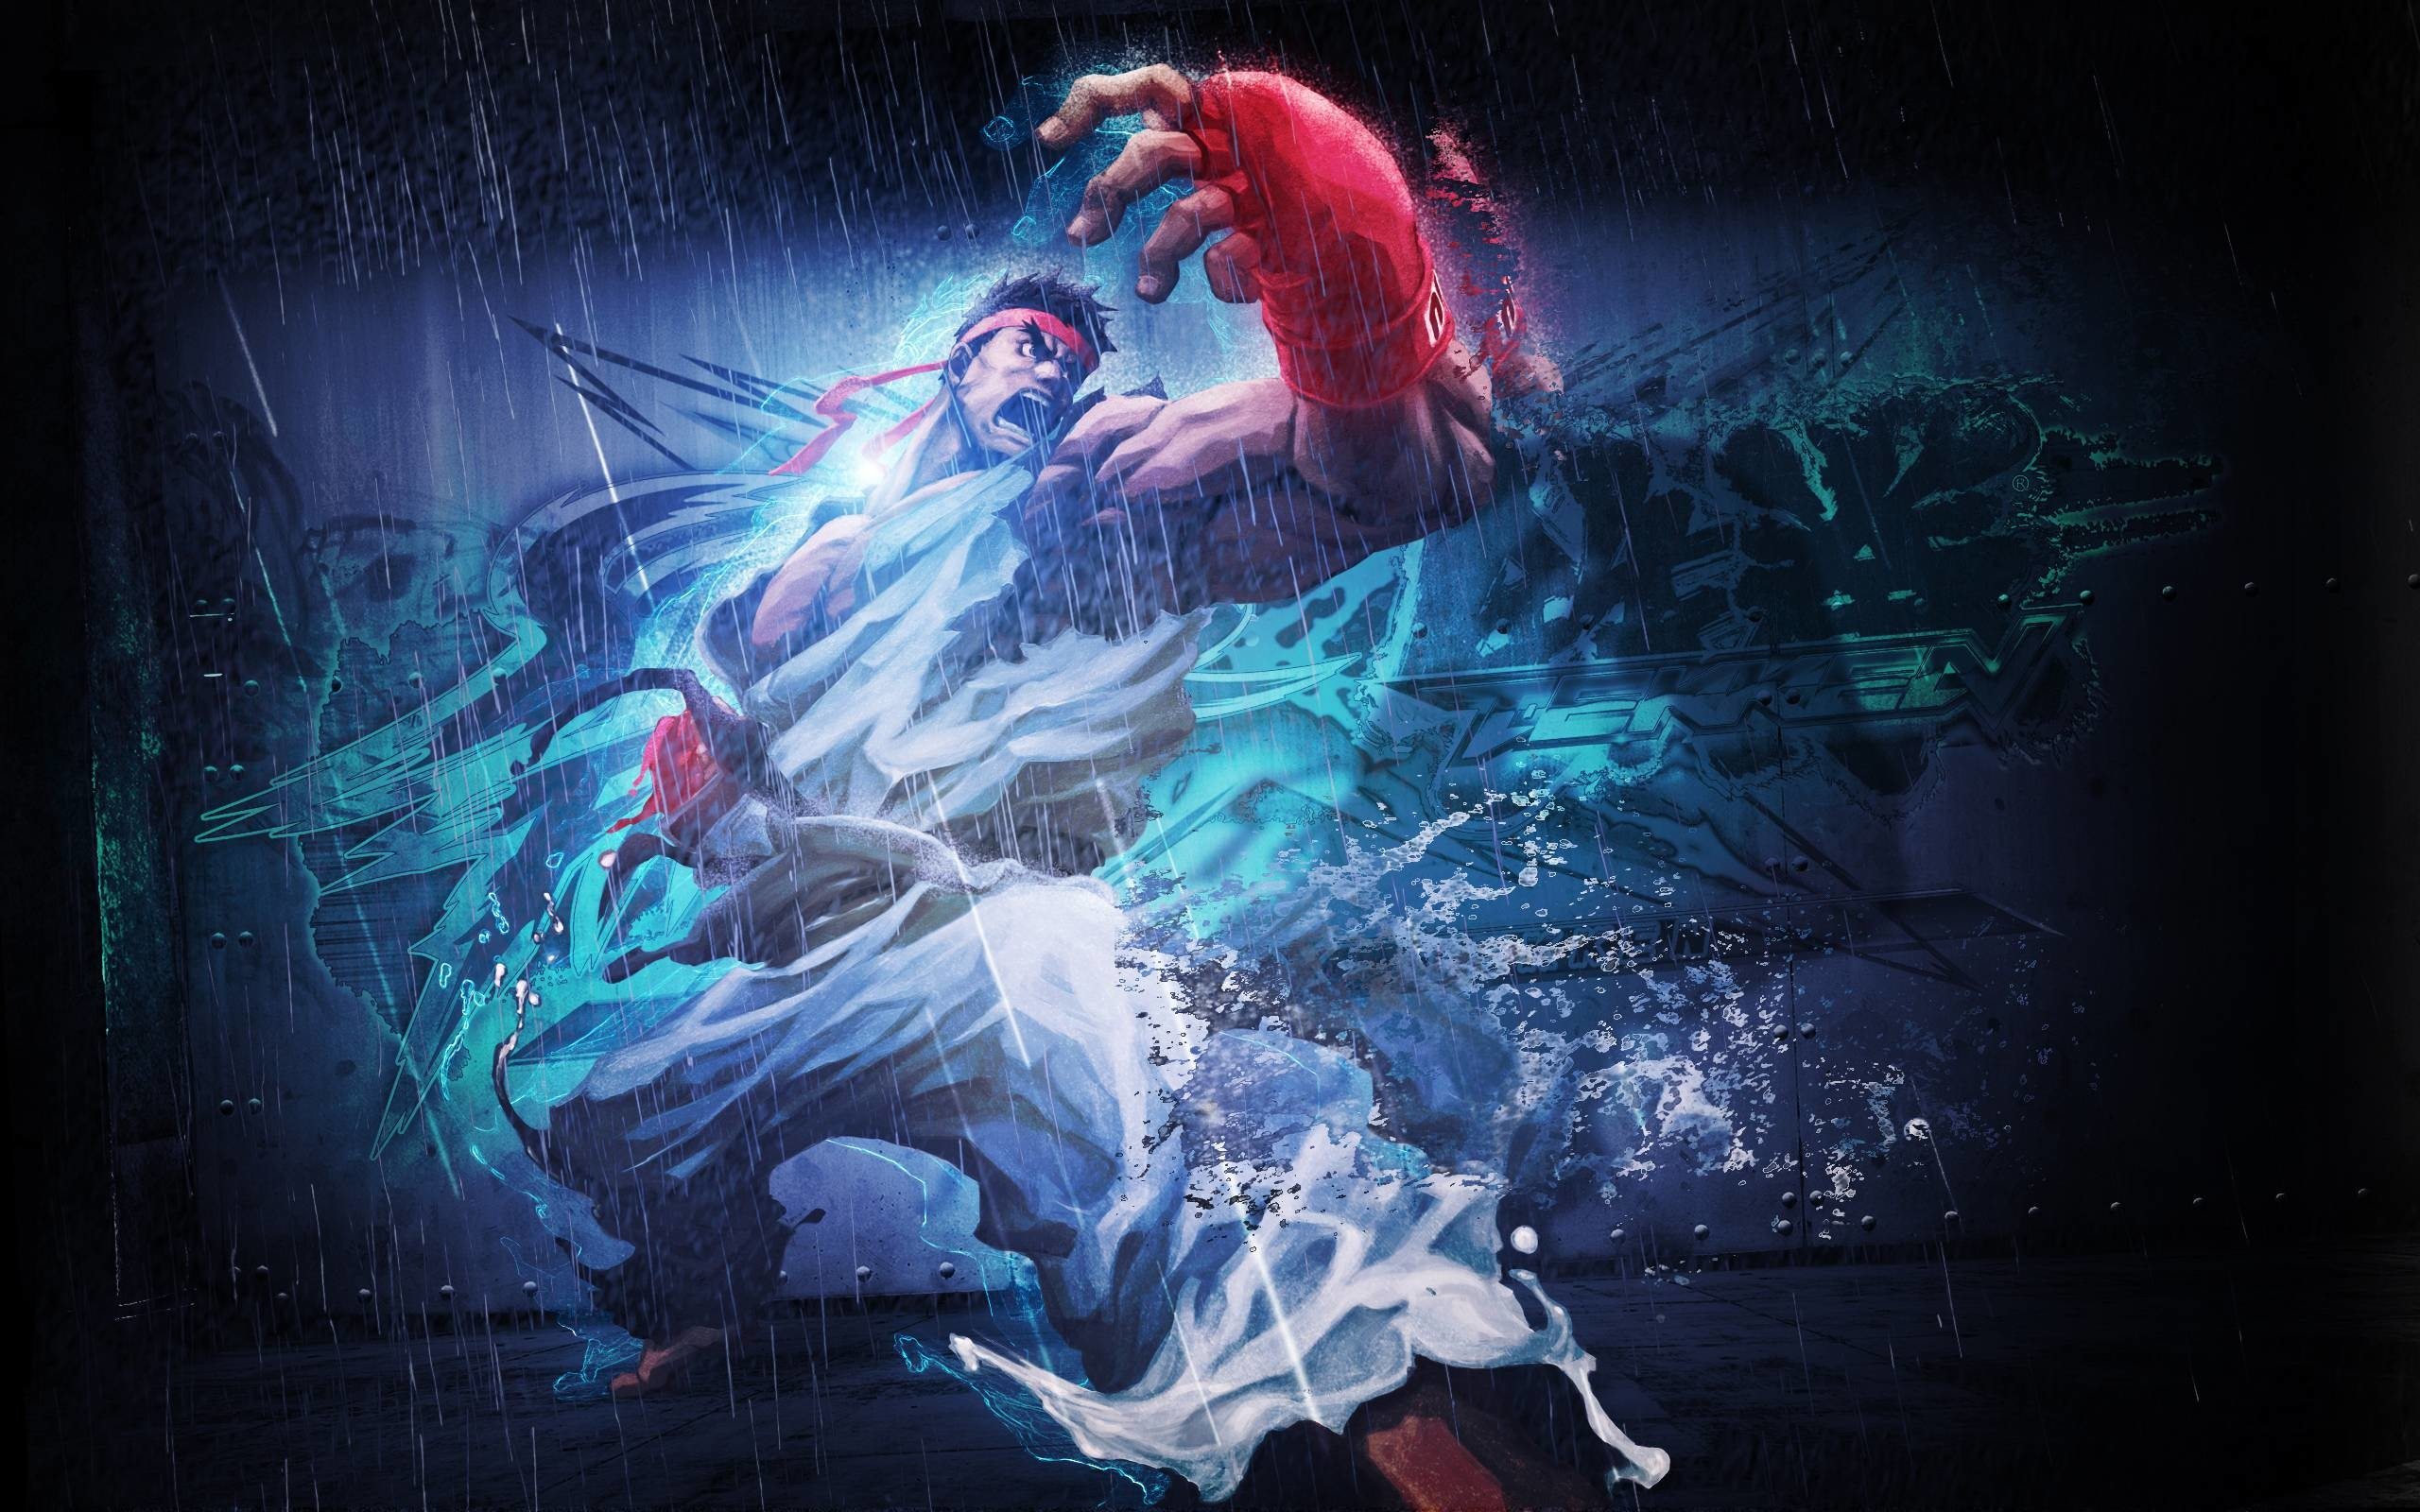 Ryu in The Street Fighter Wallpapers | HD Wallpapers